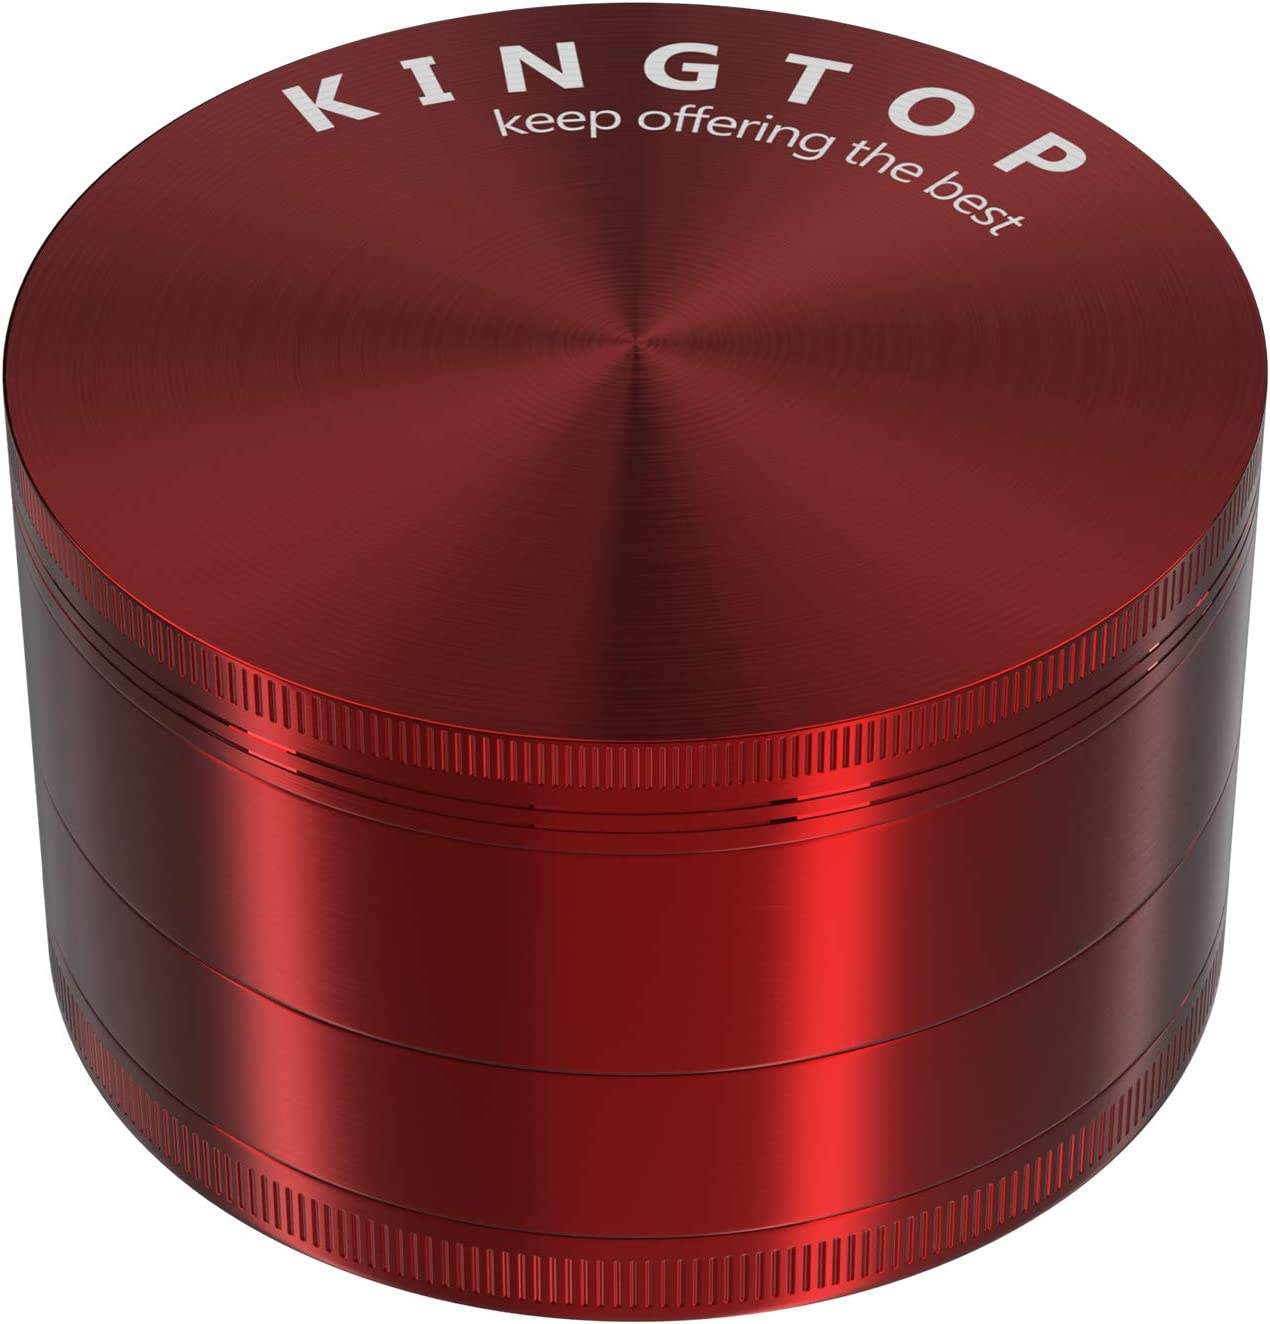 Kingtop Herb Spice Grinder Large 3.0 Inch Red